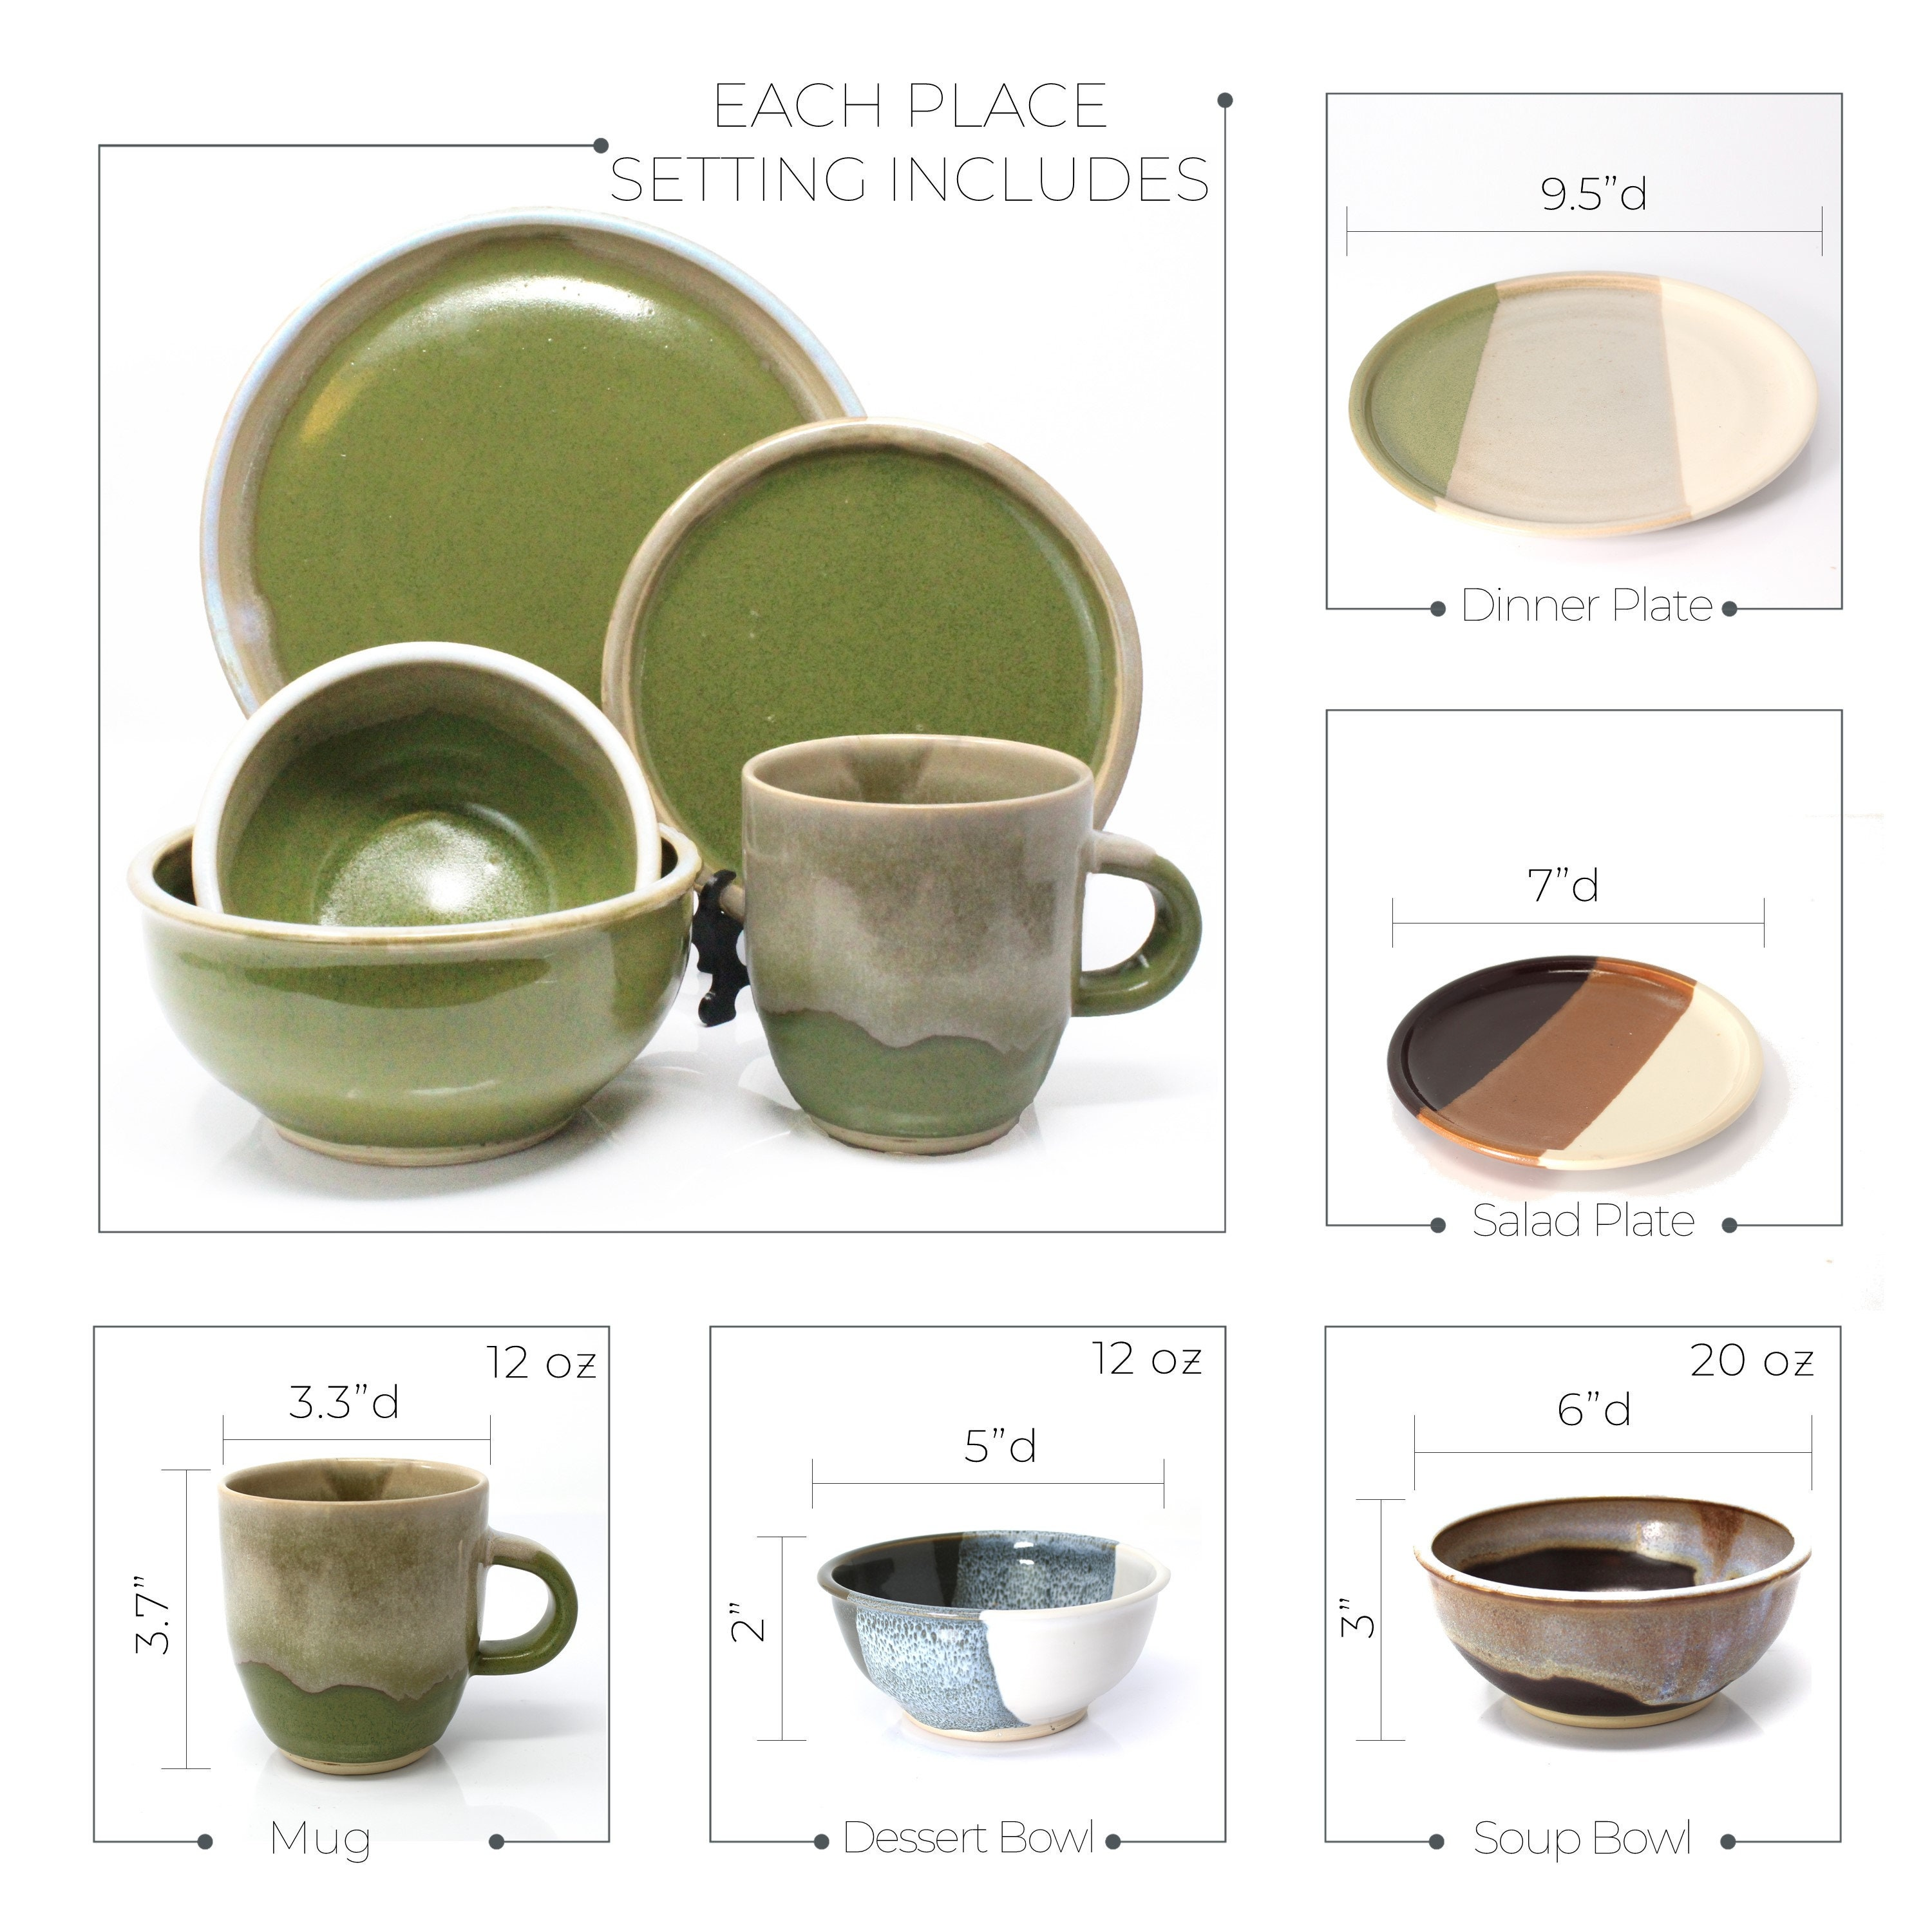 Rustic Dinnerware Sets Cheaper Than Retail Price Buy Clothing Accessories And Lifestyle Products For Women Men